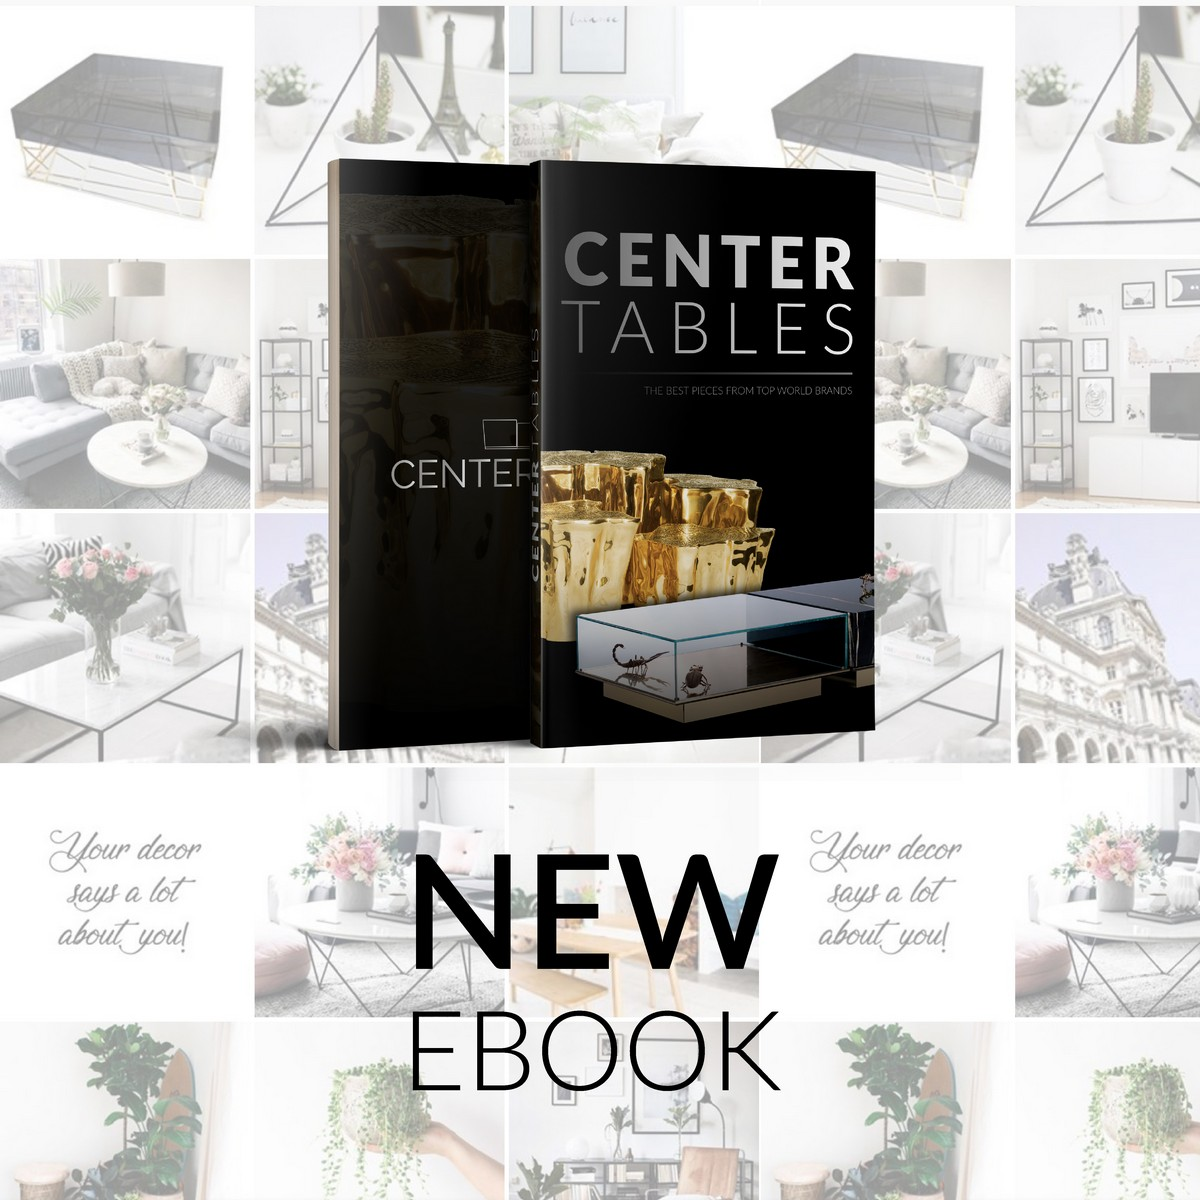 FREE EBOOK: The Best Center Tables Inspirations For Your Home Decor | This pieces come in a wide range of sizes, styles, materials, colors and even function, and sometimes it gets hard to decide which one will look better in our living room next to our furniture. #centertables #homeinteriors #centertablesblog #homedecor #interiordesign Center Tables Inspirations FREE EBOOK: The Best Center Tables Inspirations For Your Home Decor BANNER BLOG 03